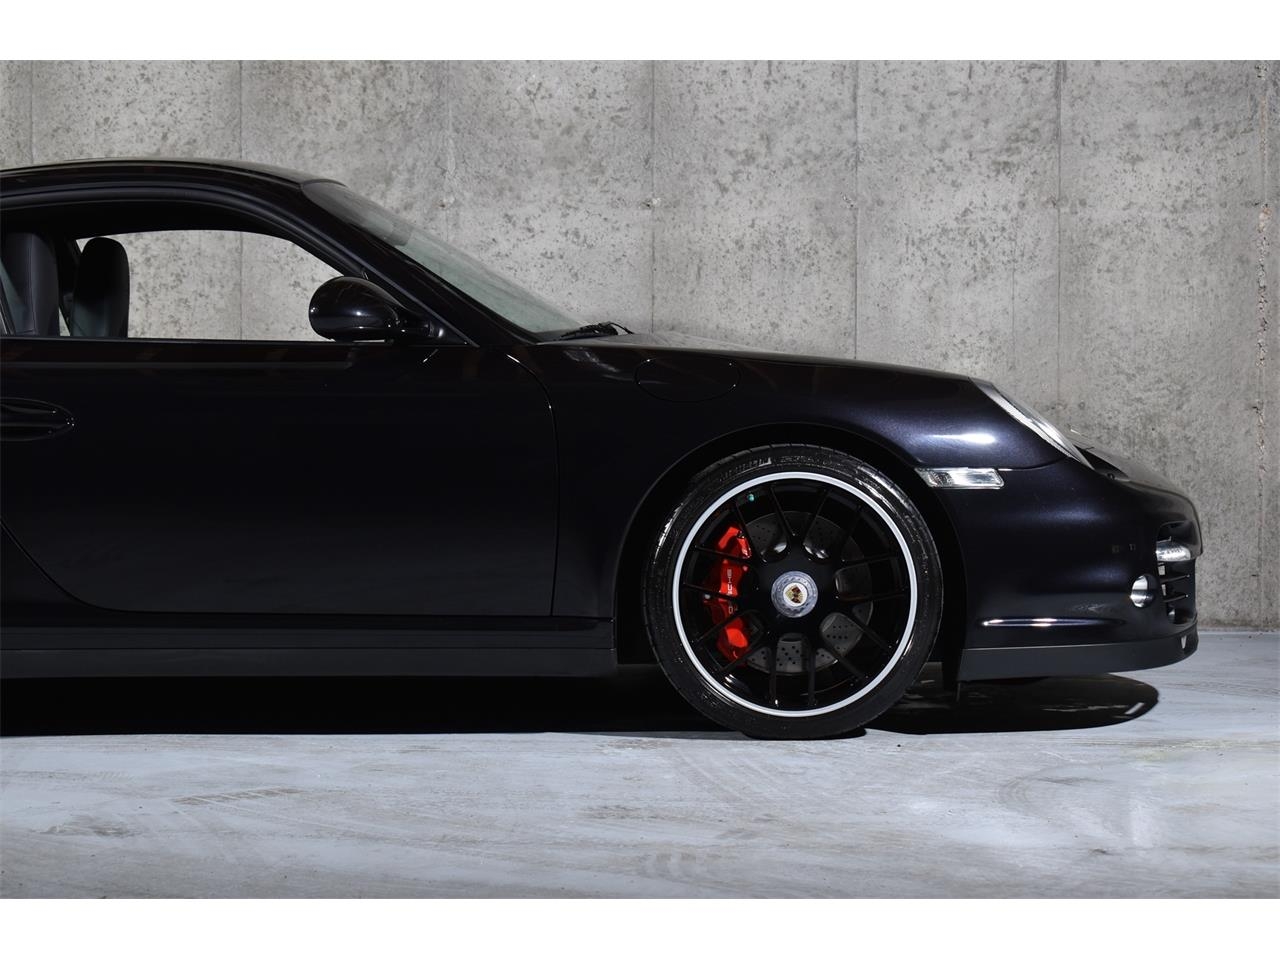 2011 Porsche 911 for sale in Valley Stream, NY – photo 3